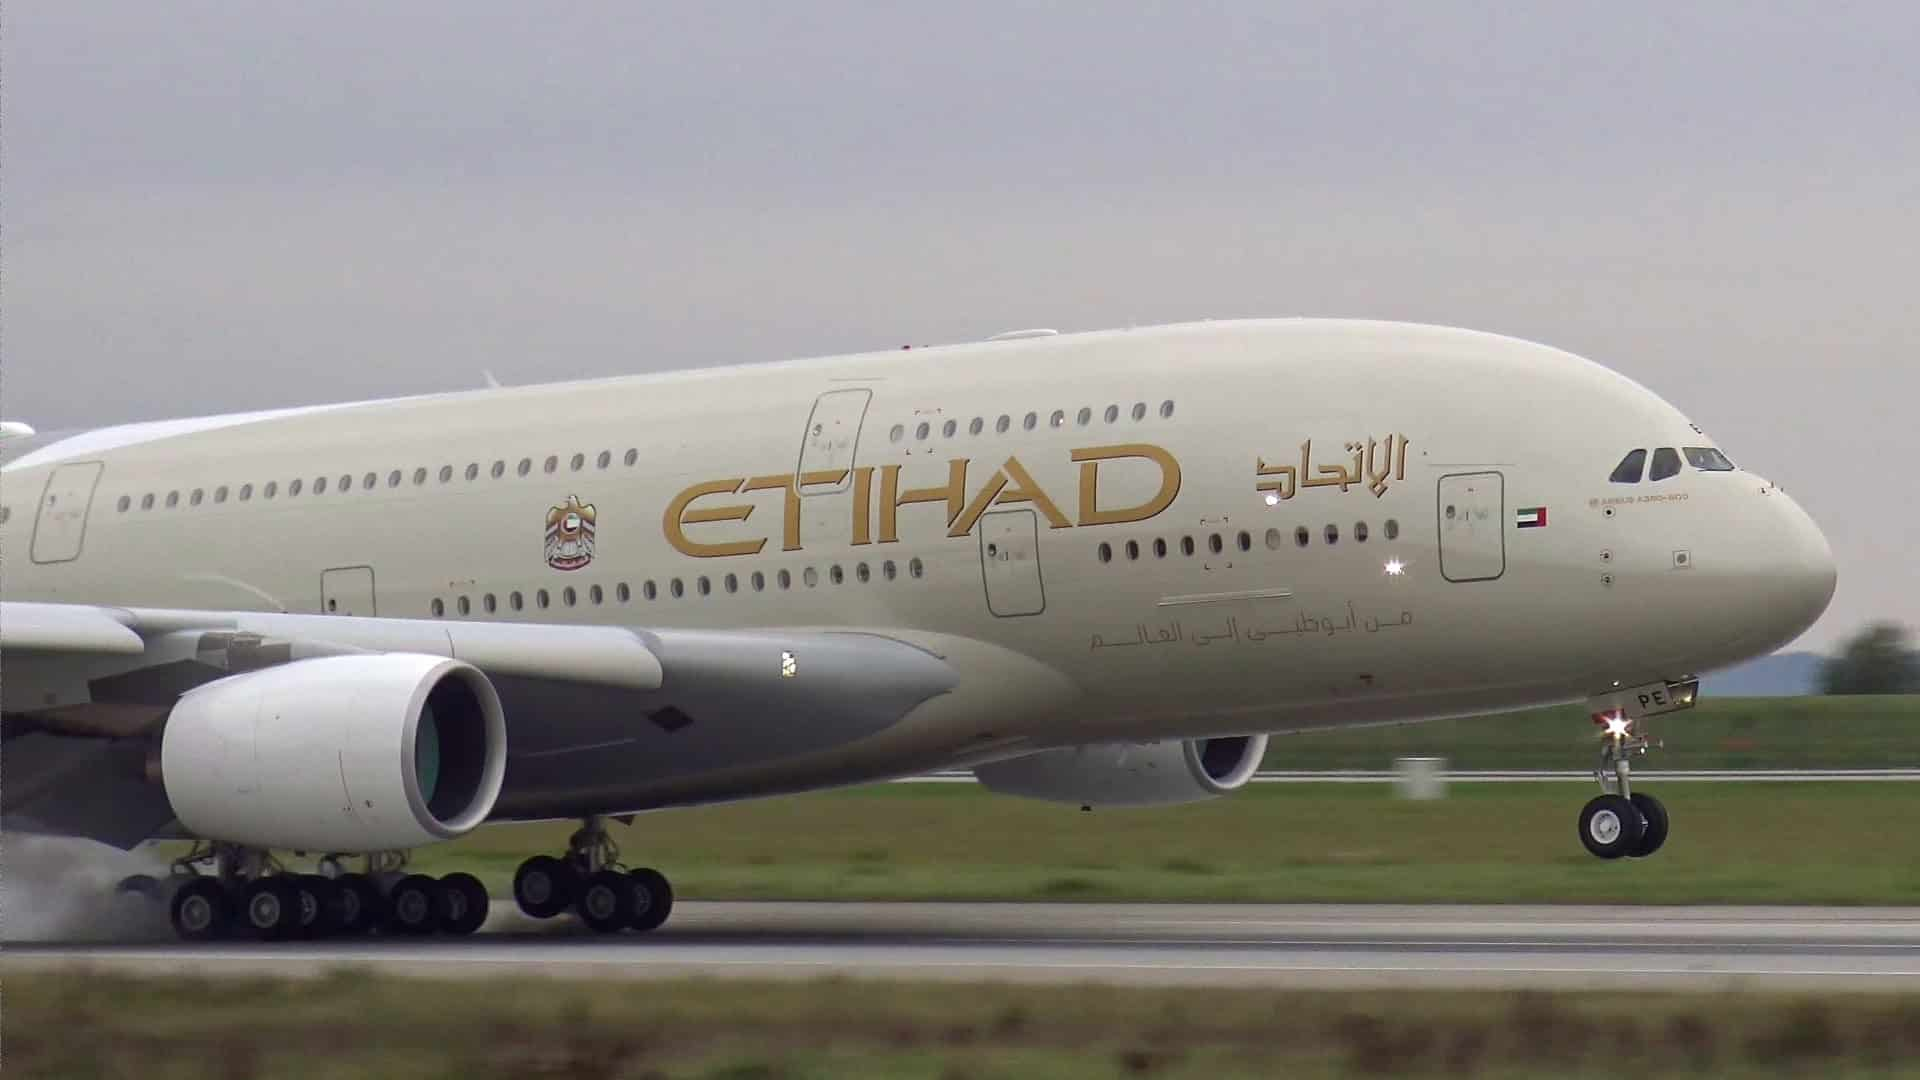 Etihad-Airways-Airbus-A380-800